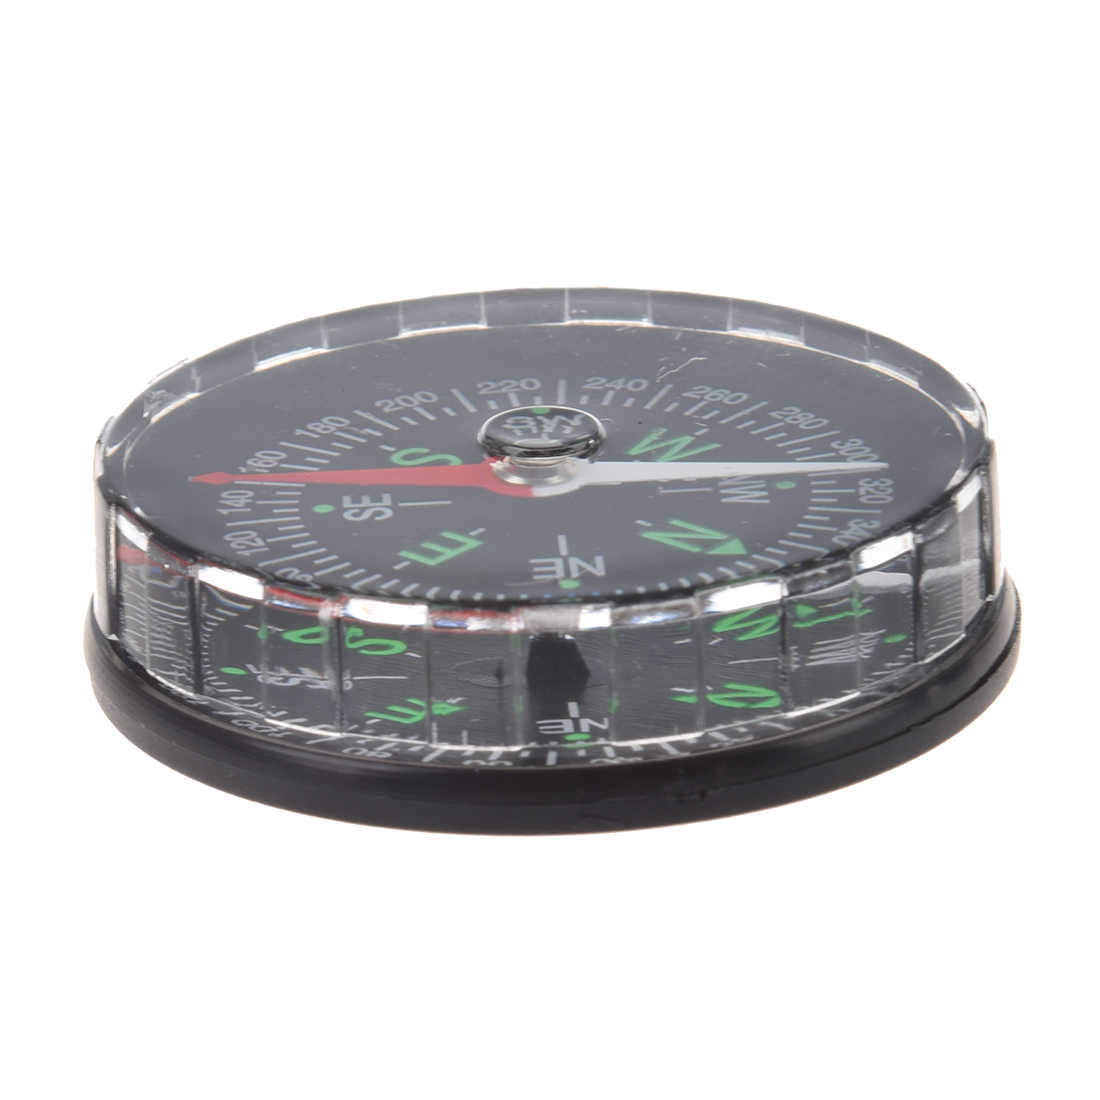 Black Oil Filled Compass Excellent for hiking, camping and outdoor